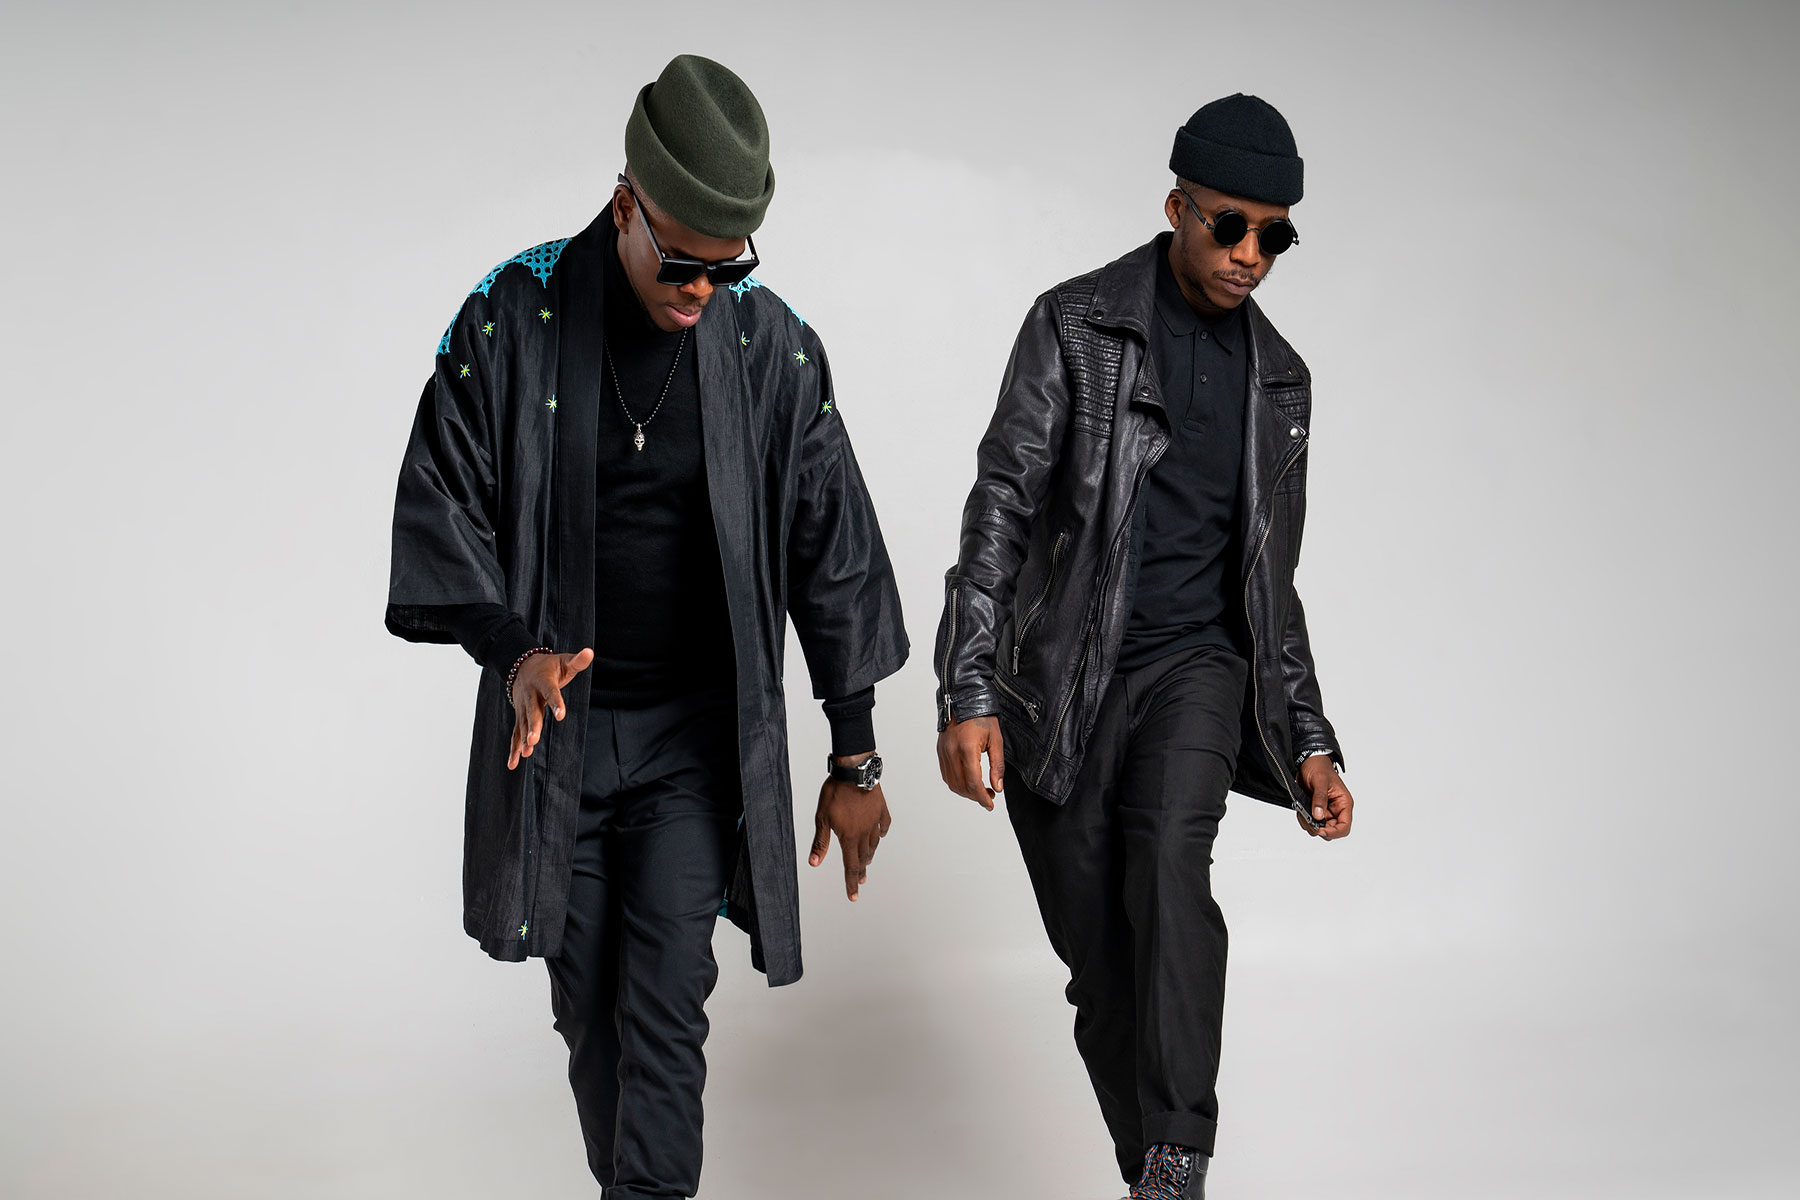 Black Motion: the Last Chapter & a New Beginning